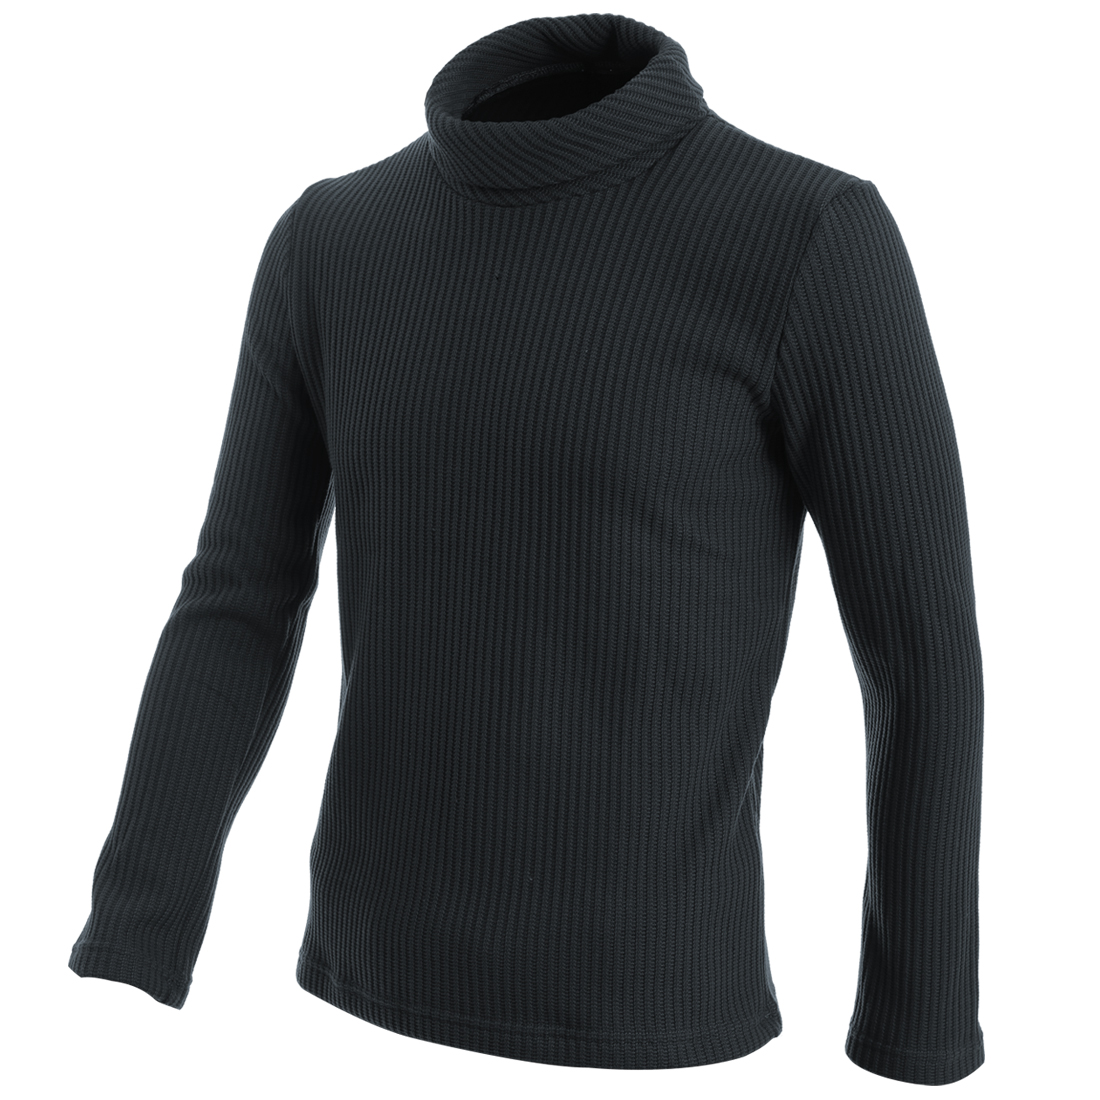 Men Fashion Turtle Neck Long Sleeve Dark Gray Textured Sweater S